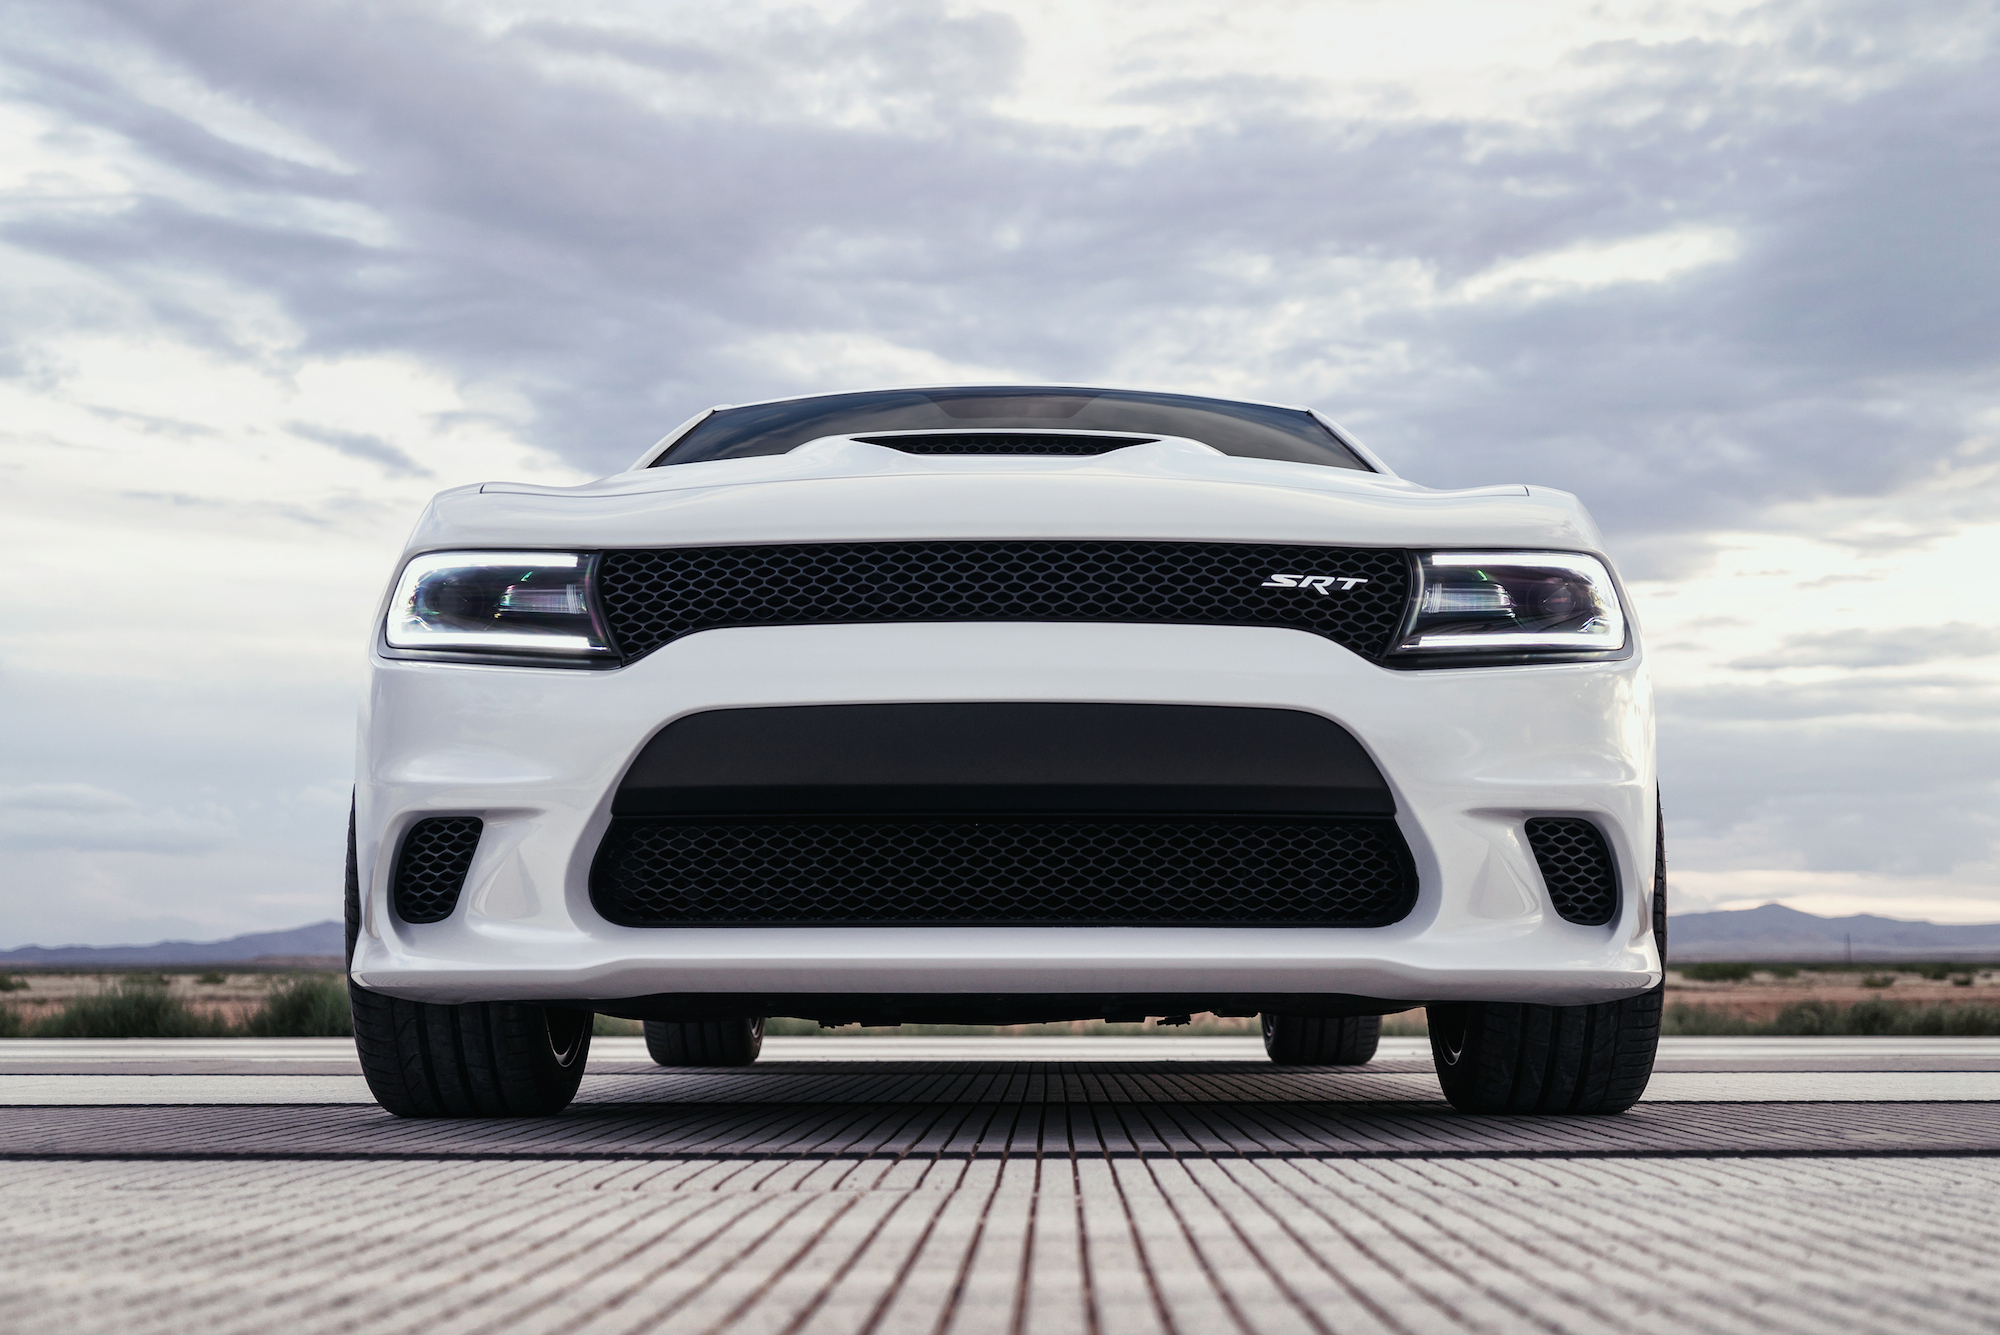 2015 Dodge Charger Hellcat For Sale El Paso Car Insurance Info